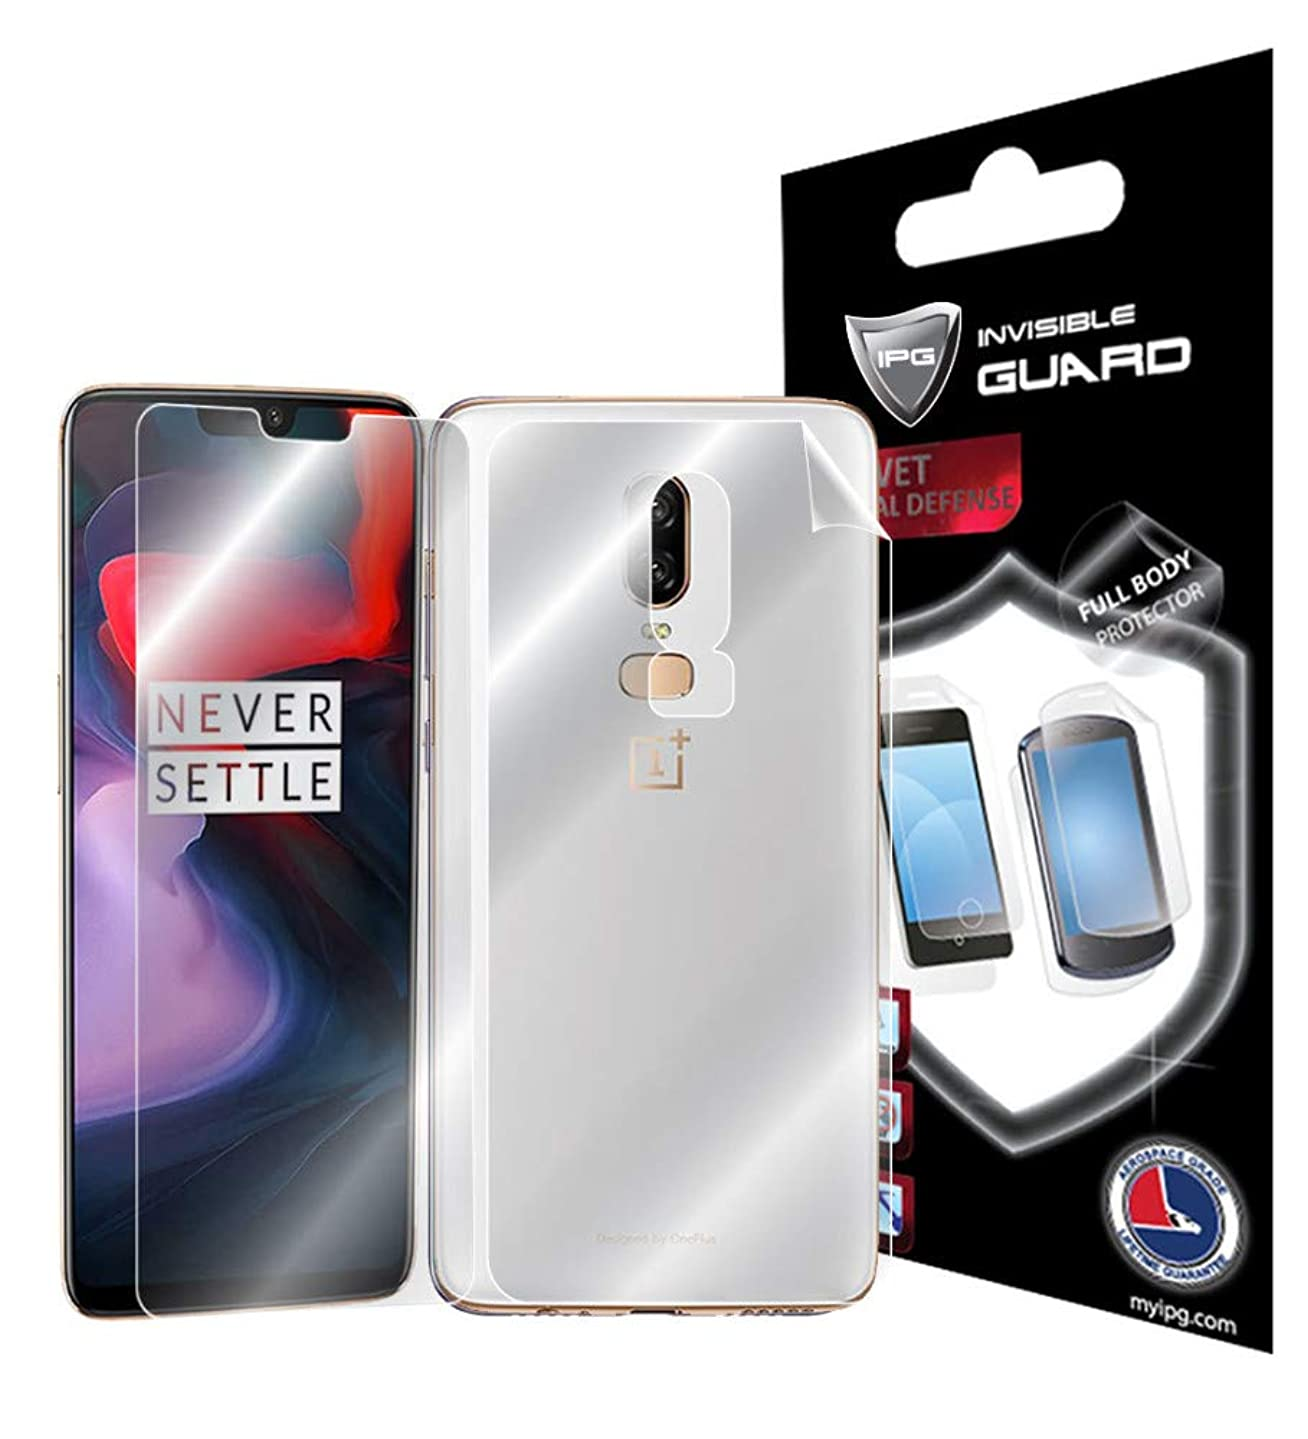 IPG for ONEPLUS 6 Full Body Protector Invisible Phone Cover Protector Ultra HD Clear Screen Film Skin Free Lifetime Replacement Warranty